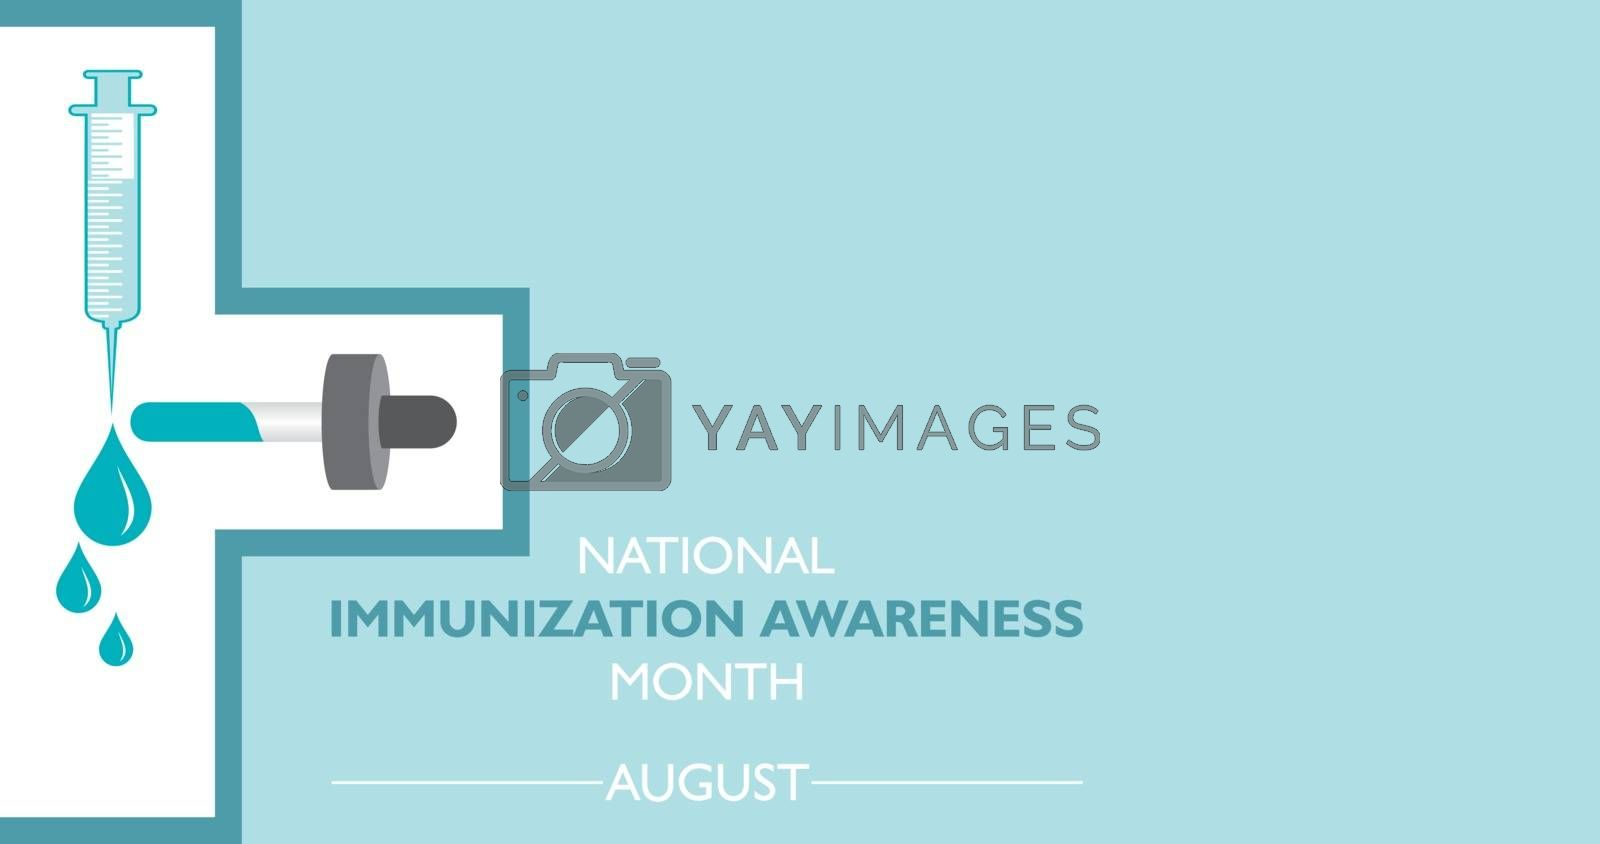 National Immunization Awareness Month observed in August by graphicsdunia4you